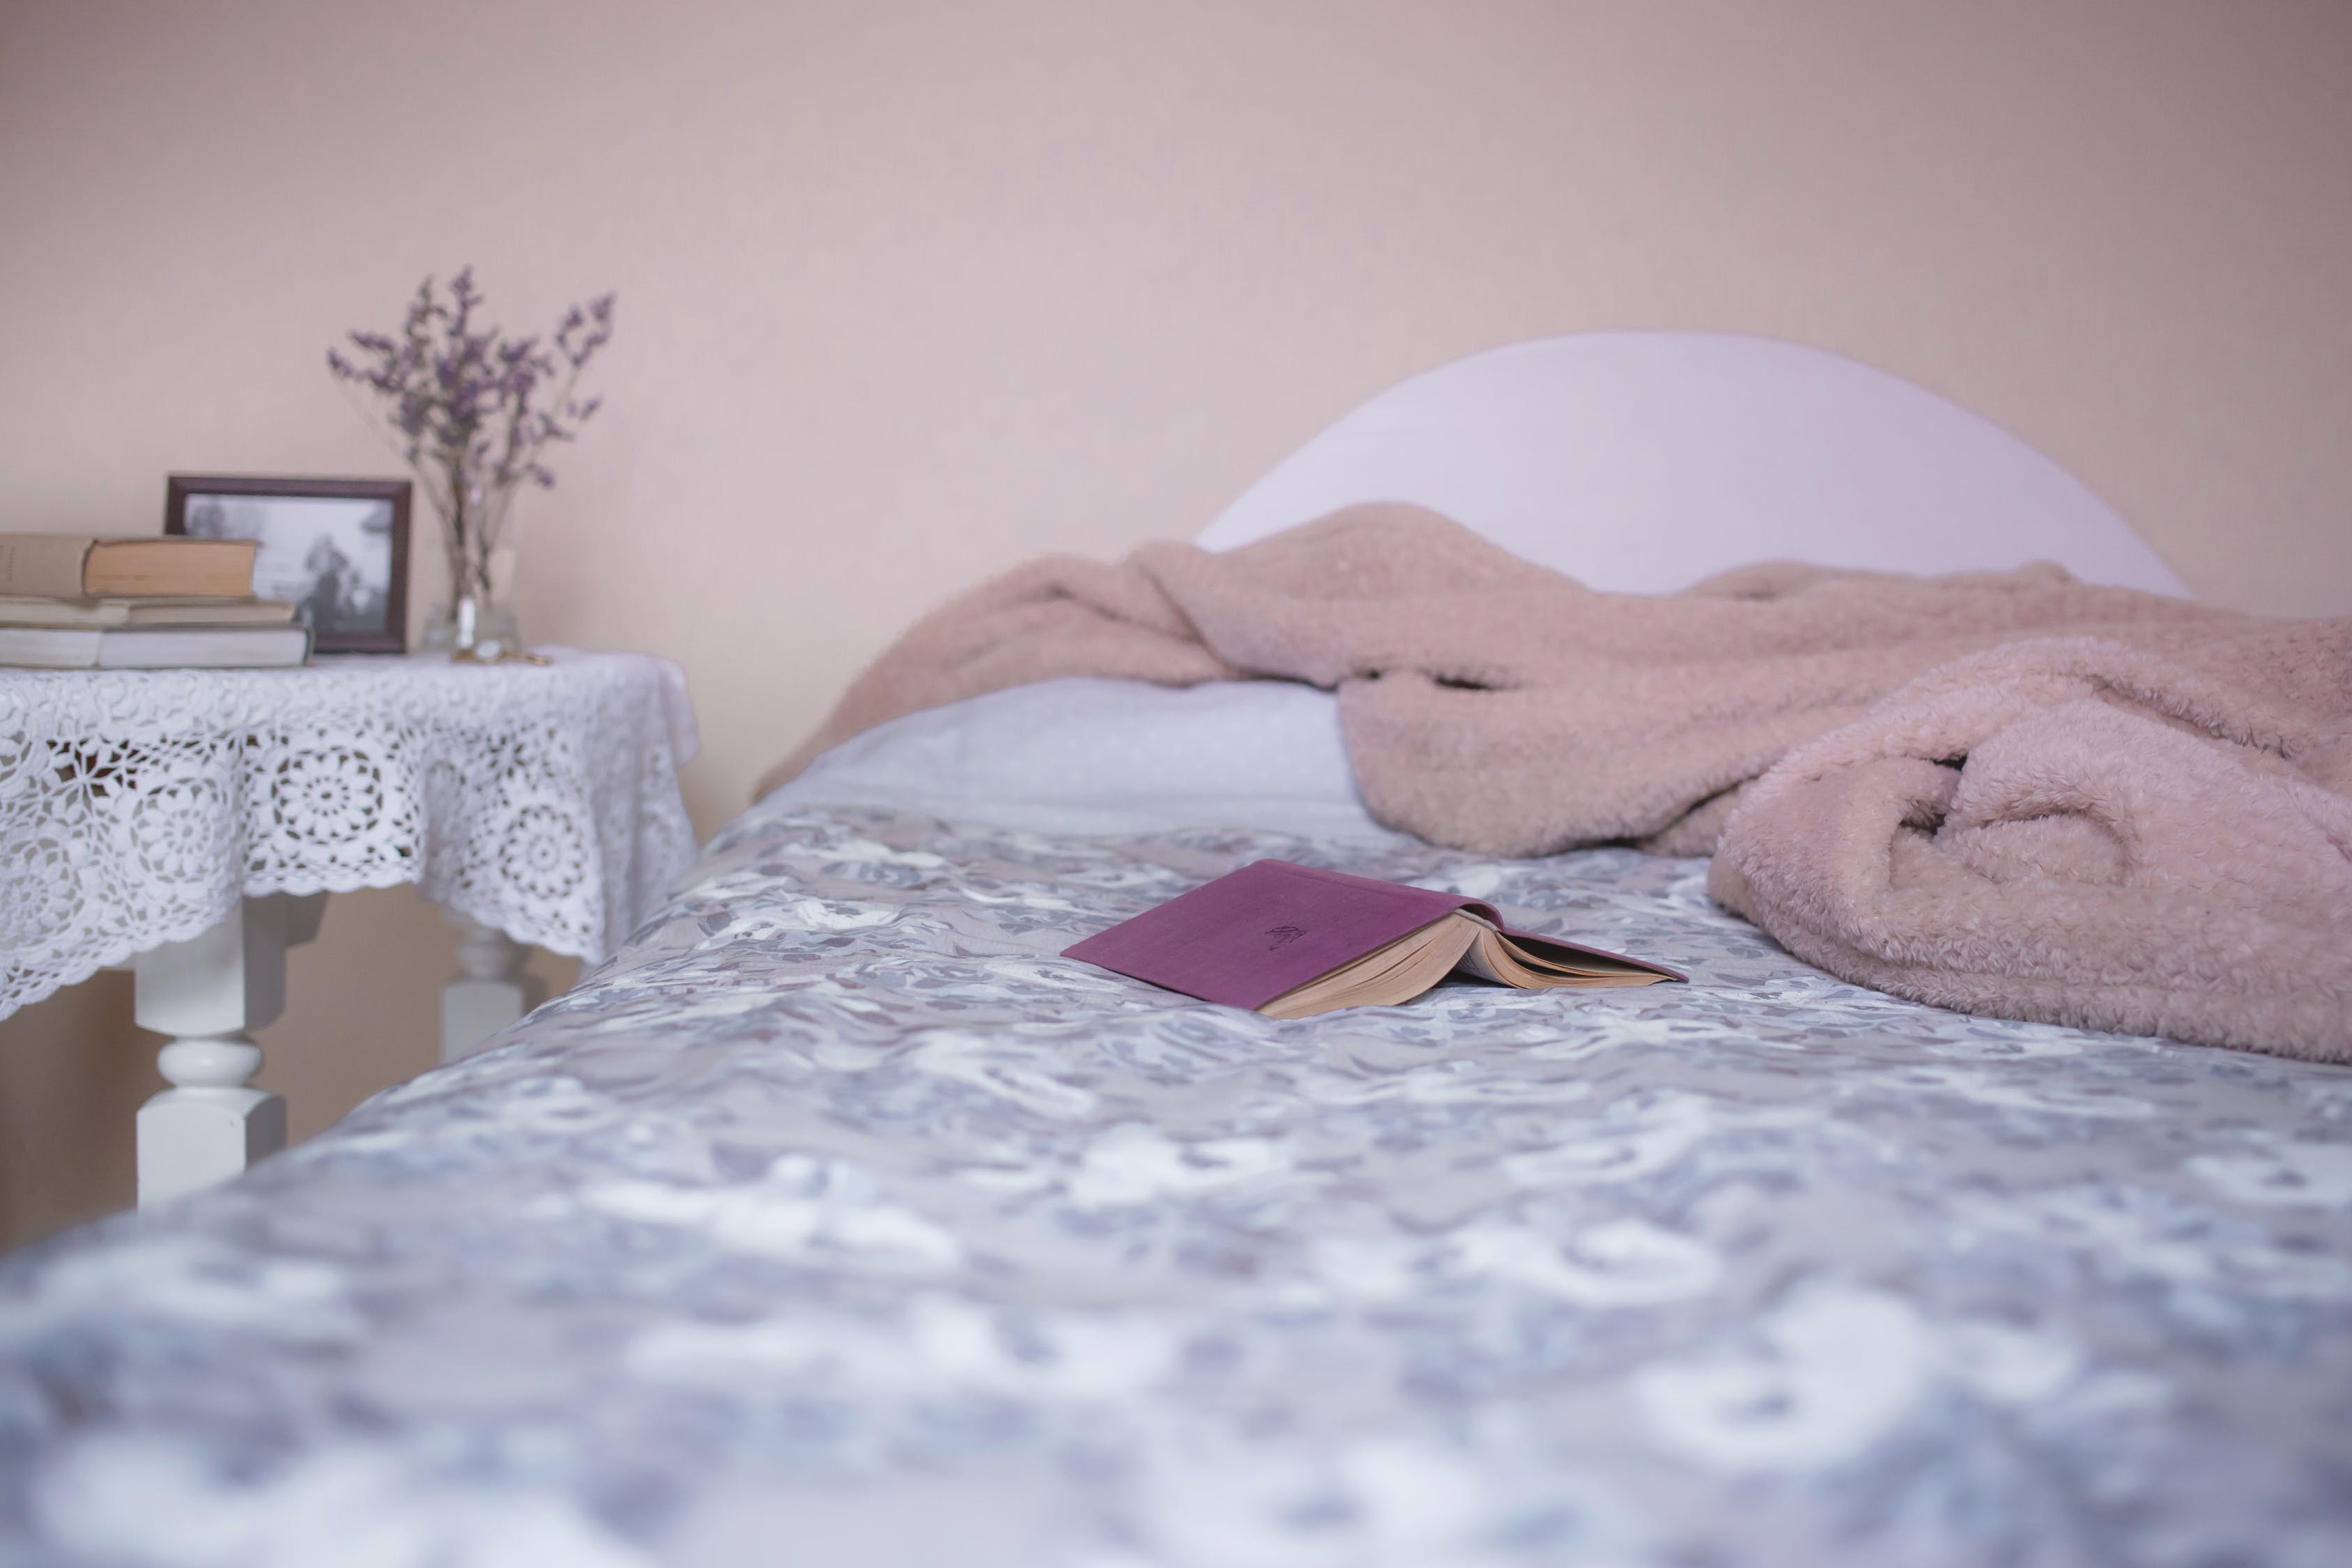 Don't take a book to bed, reading might hamper a good night's sleep.